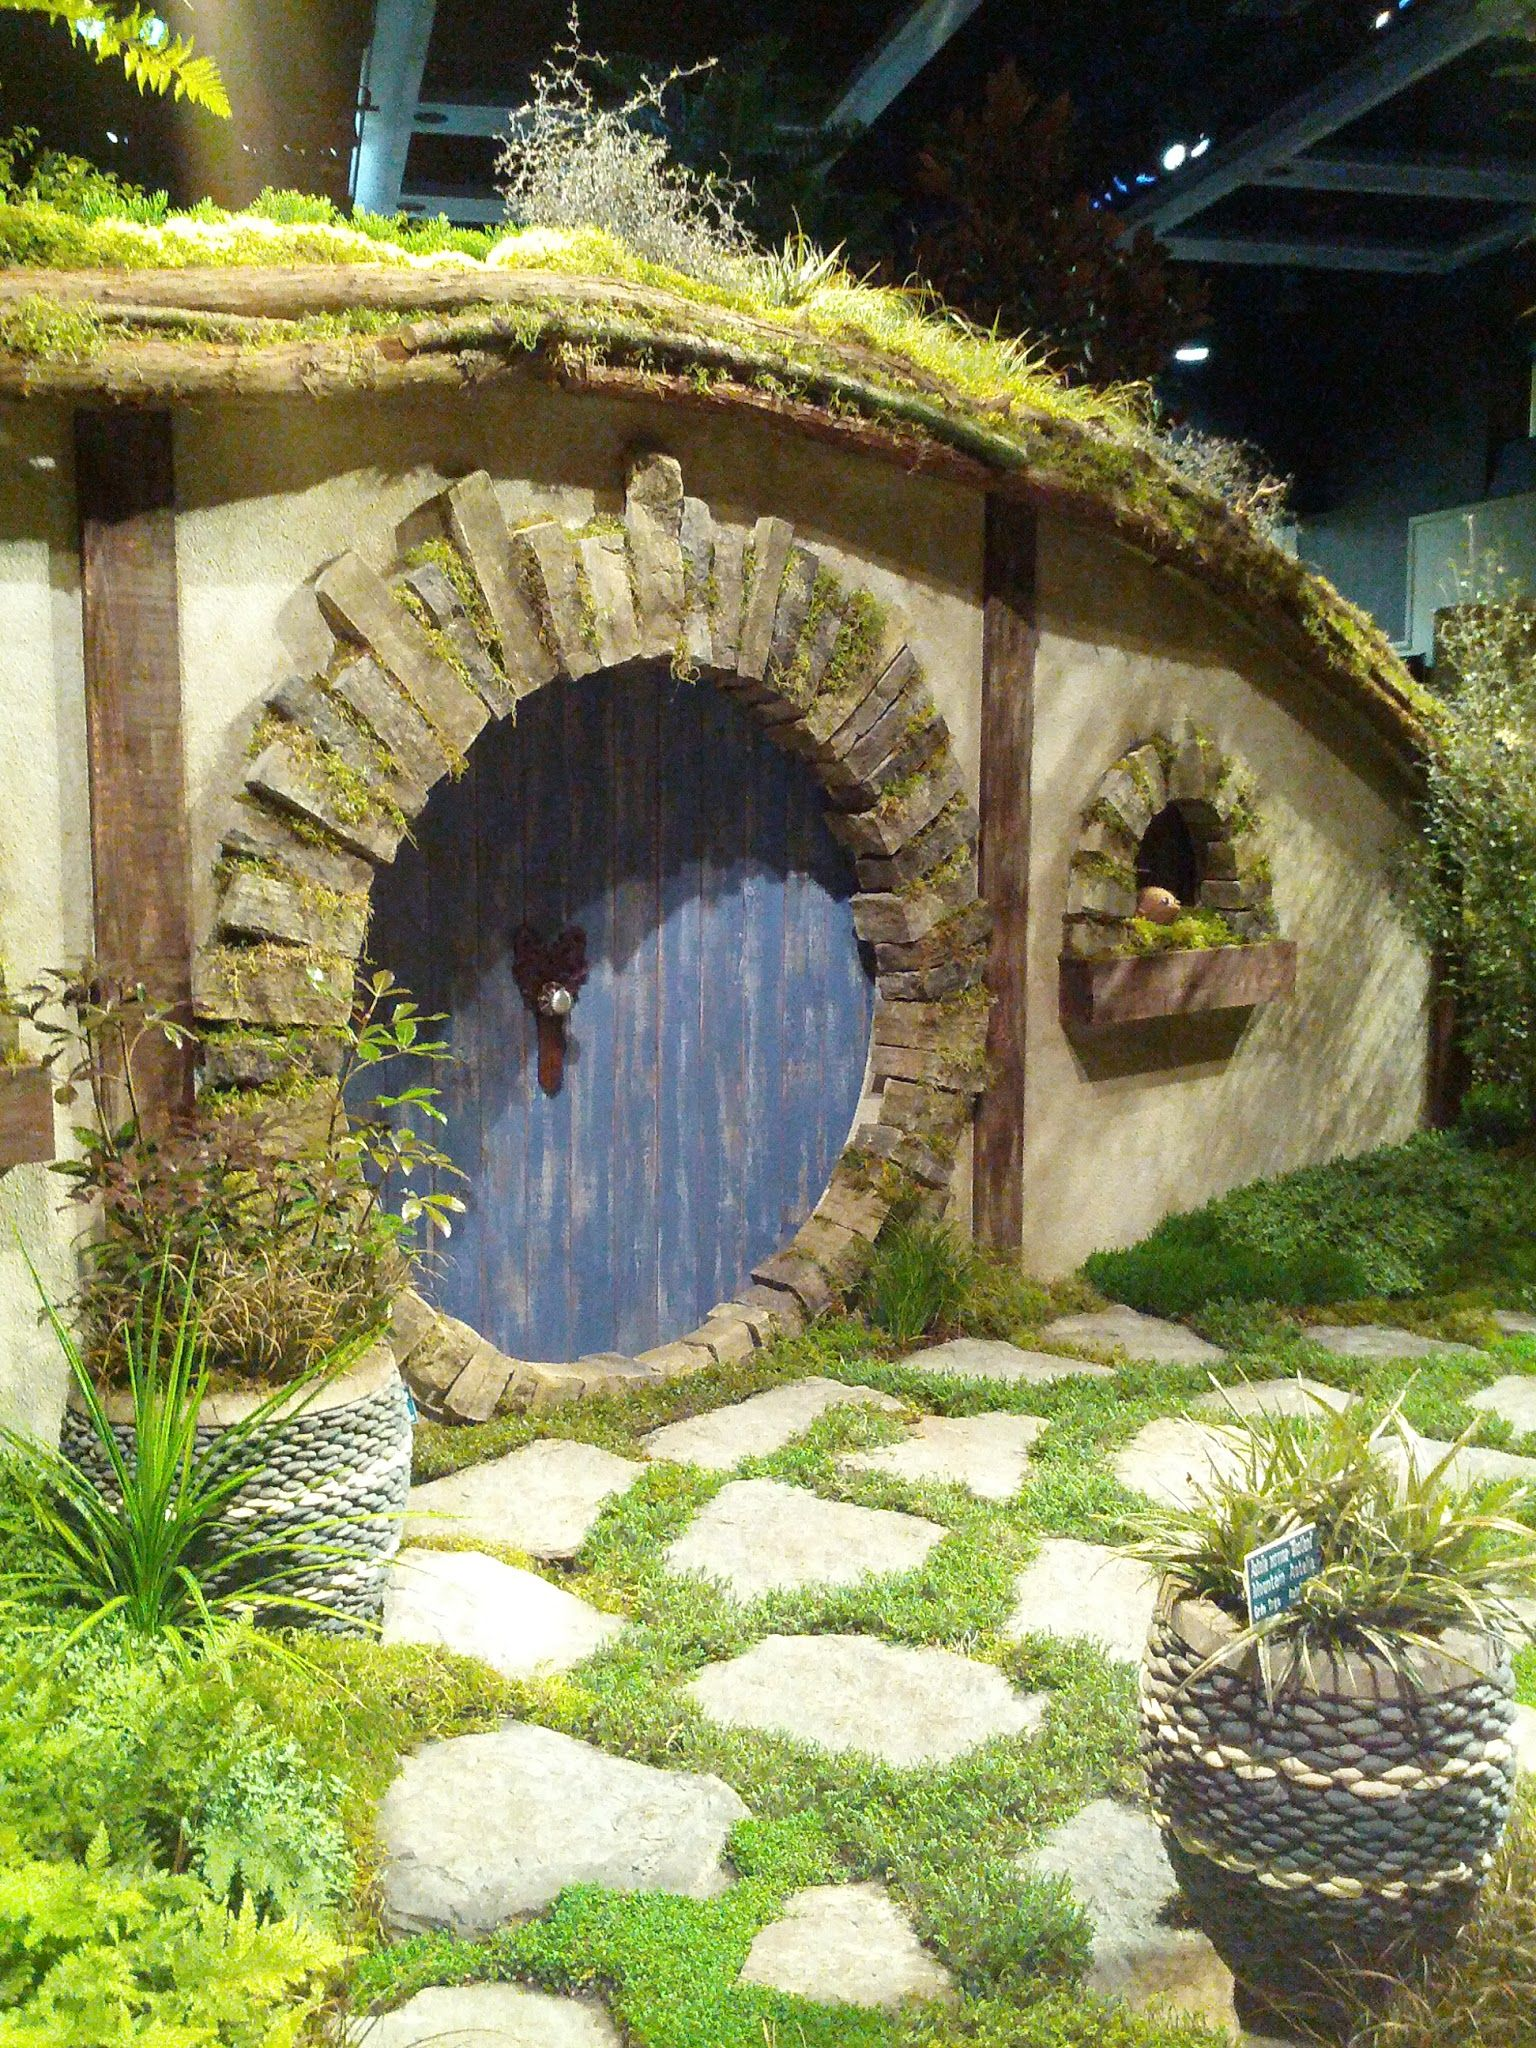 Northwest Flower And Garden Show « UW Botanic Gardens News